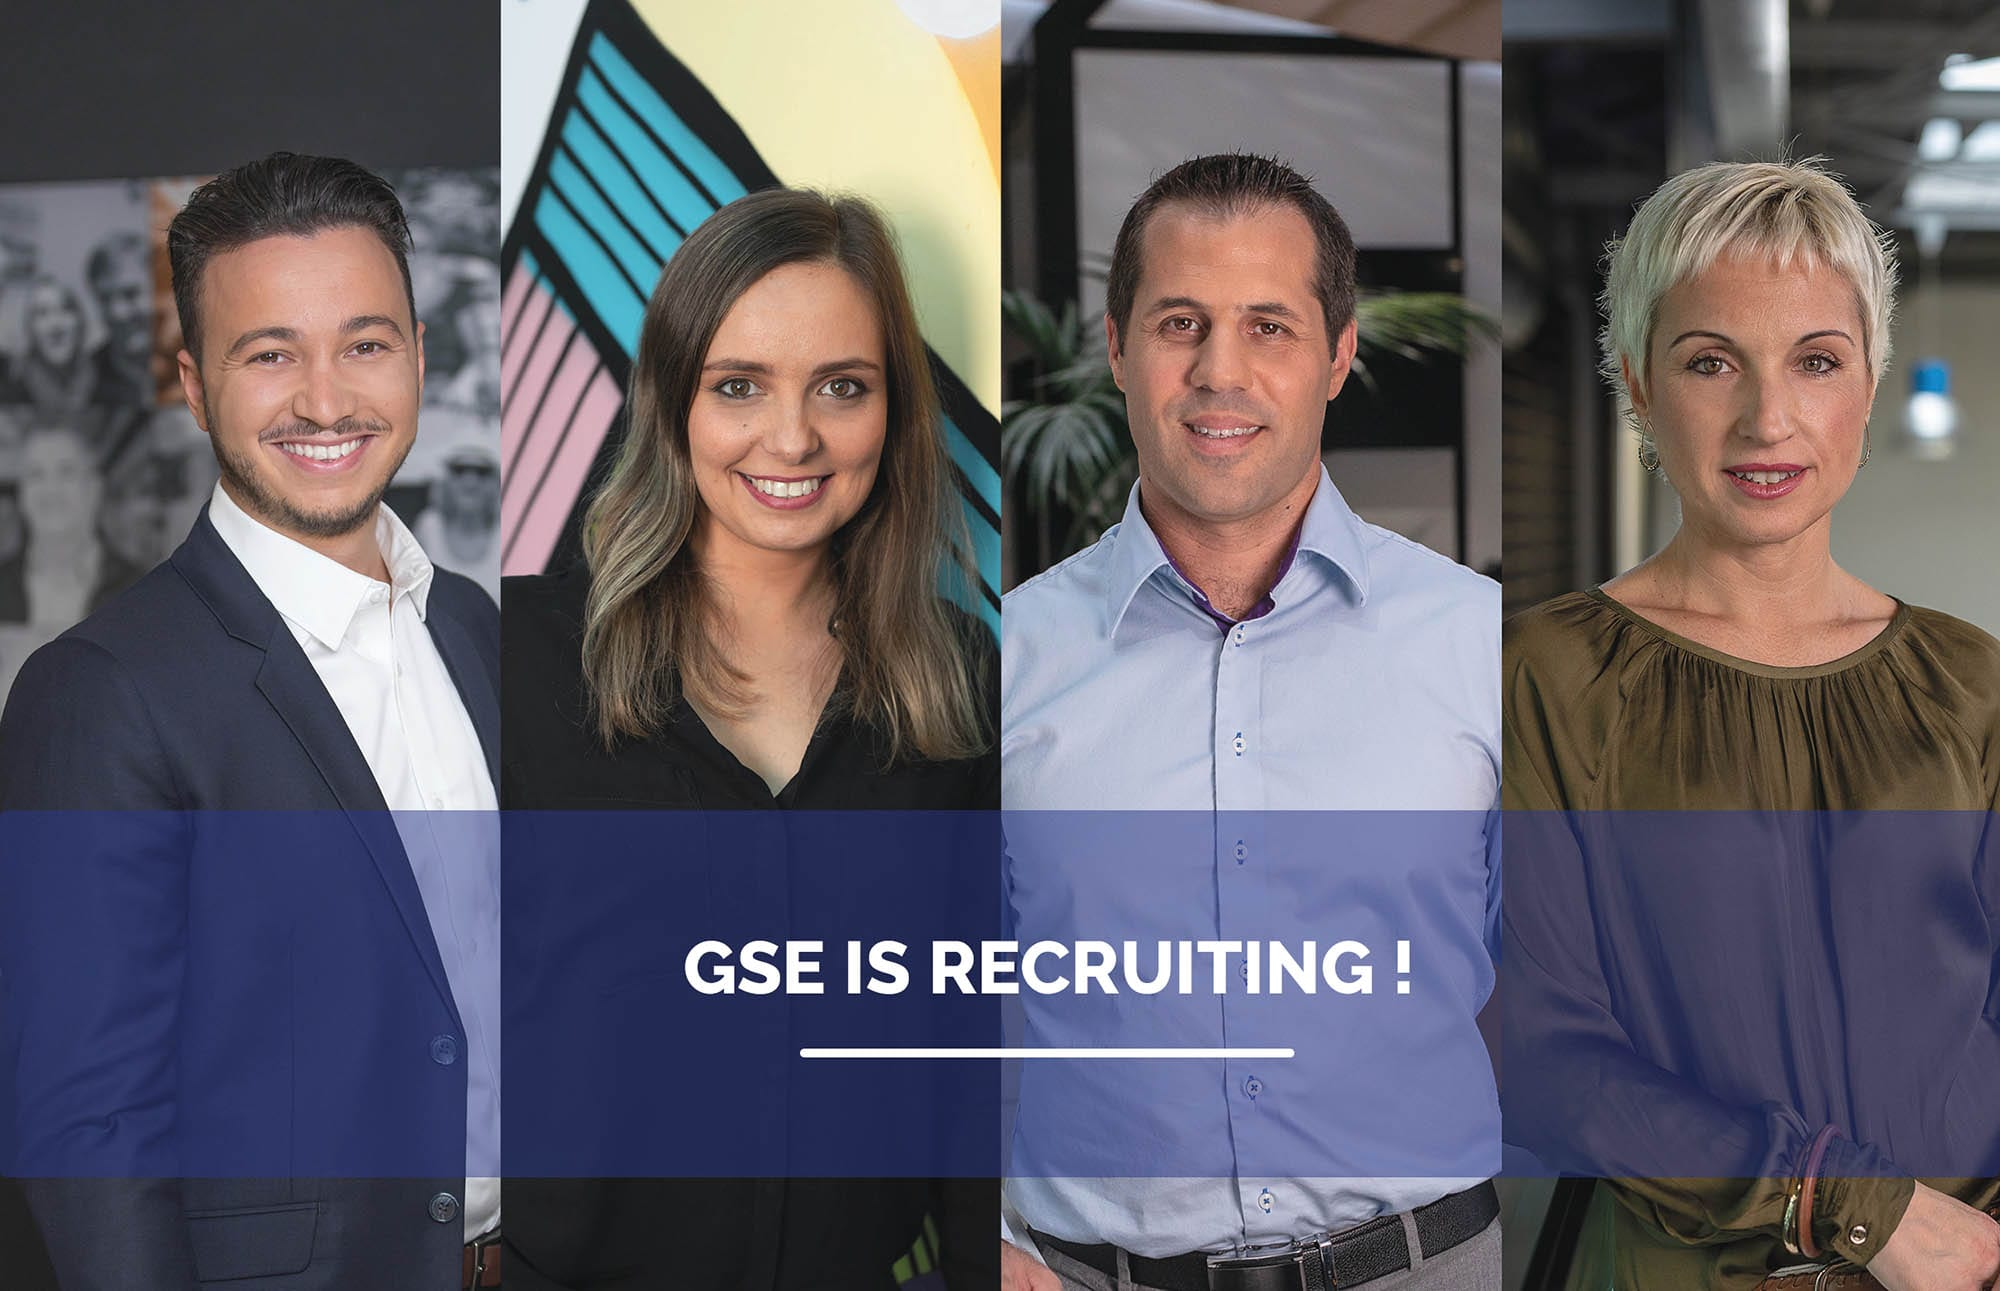 GSE to recruit 50 engineers in Europe